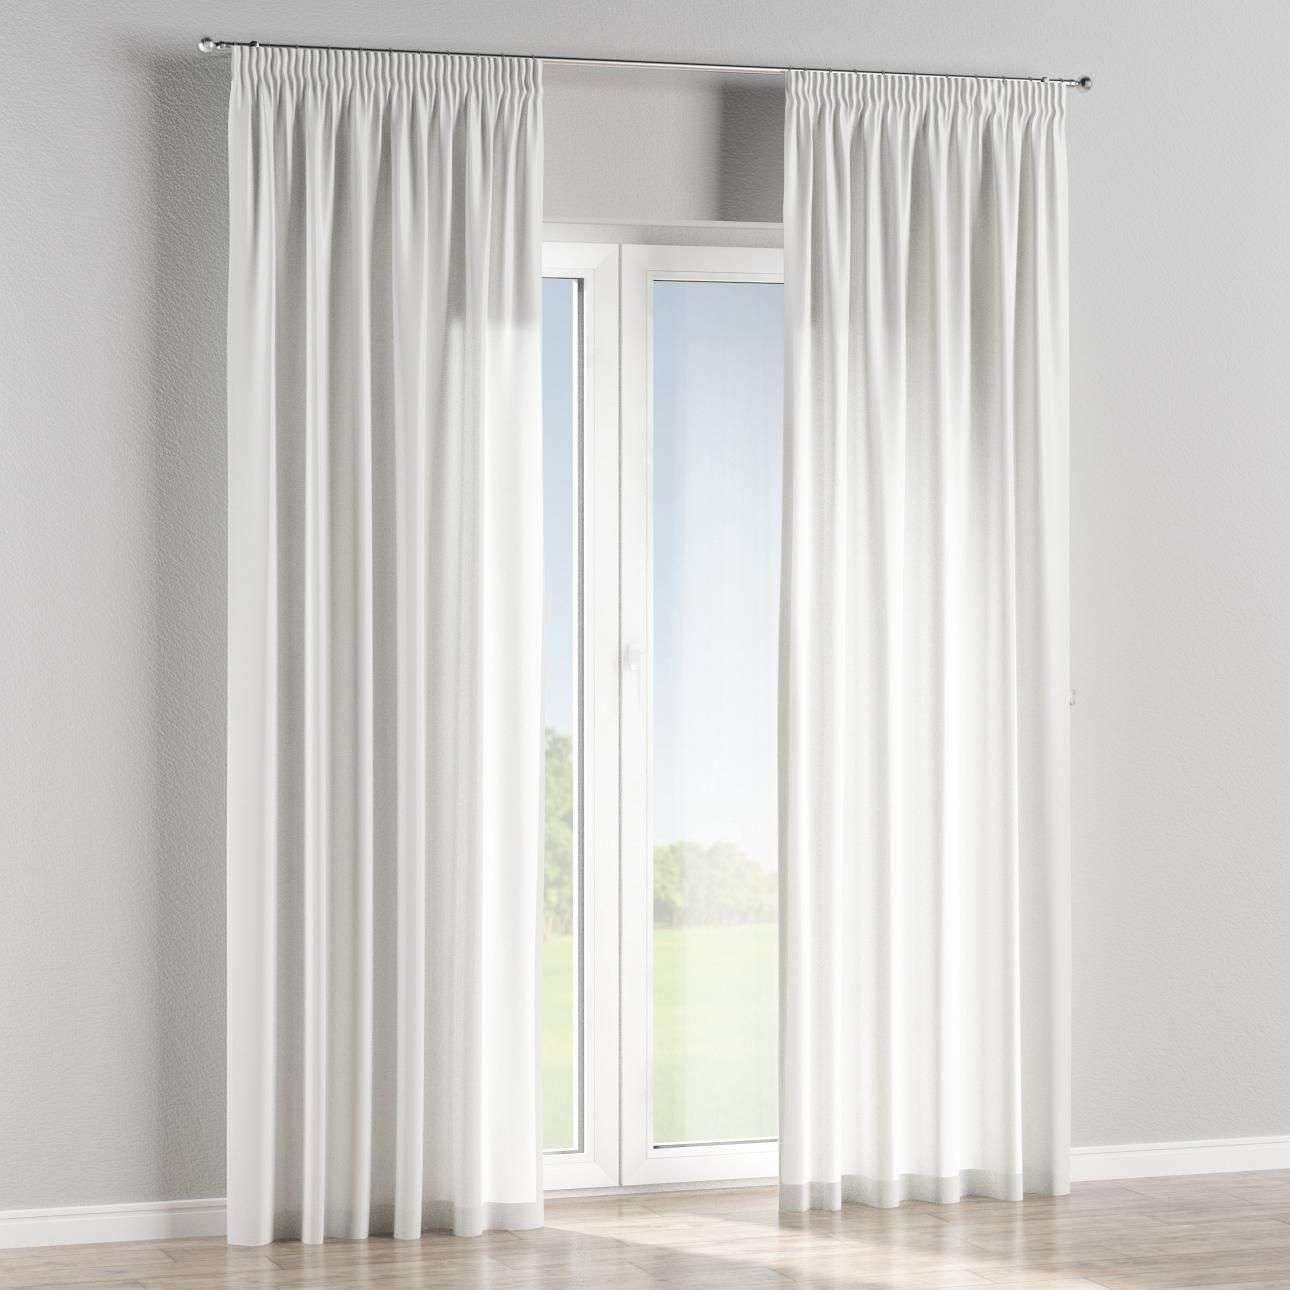 Pencil pleat curtains in collection New Art, fabric: 140-26